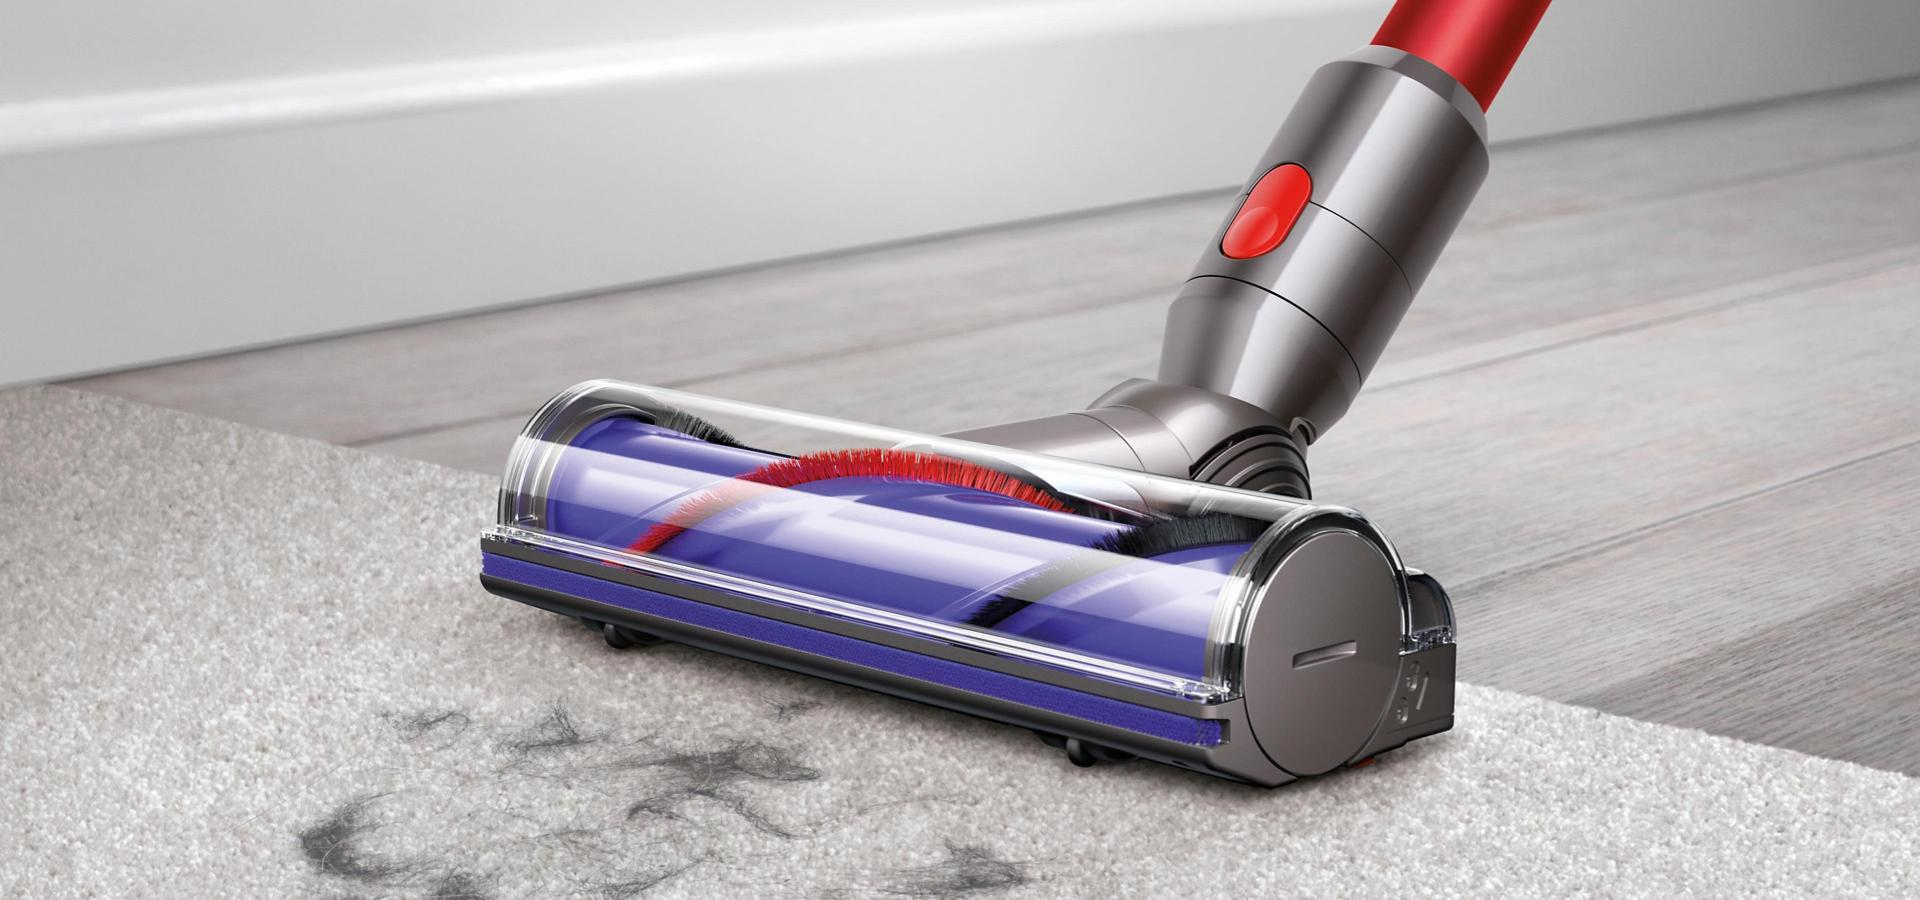 Dyson V7 direct crive cleaner head cleaning across carpet and hard floor